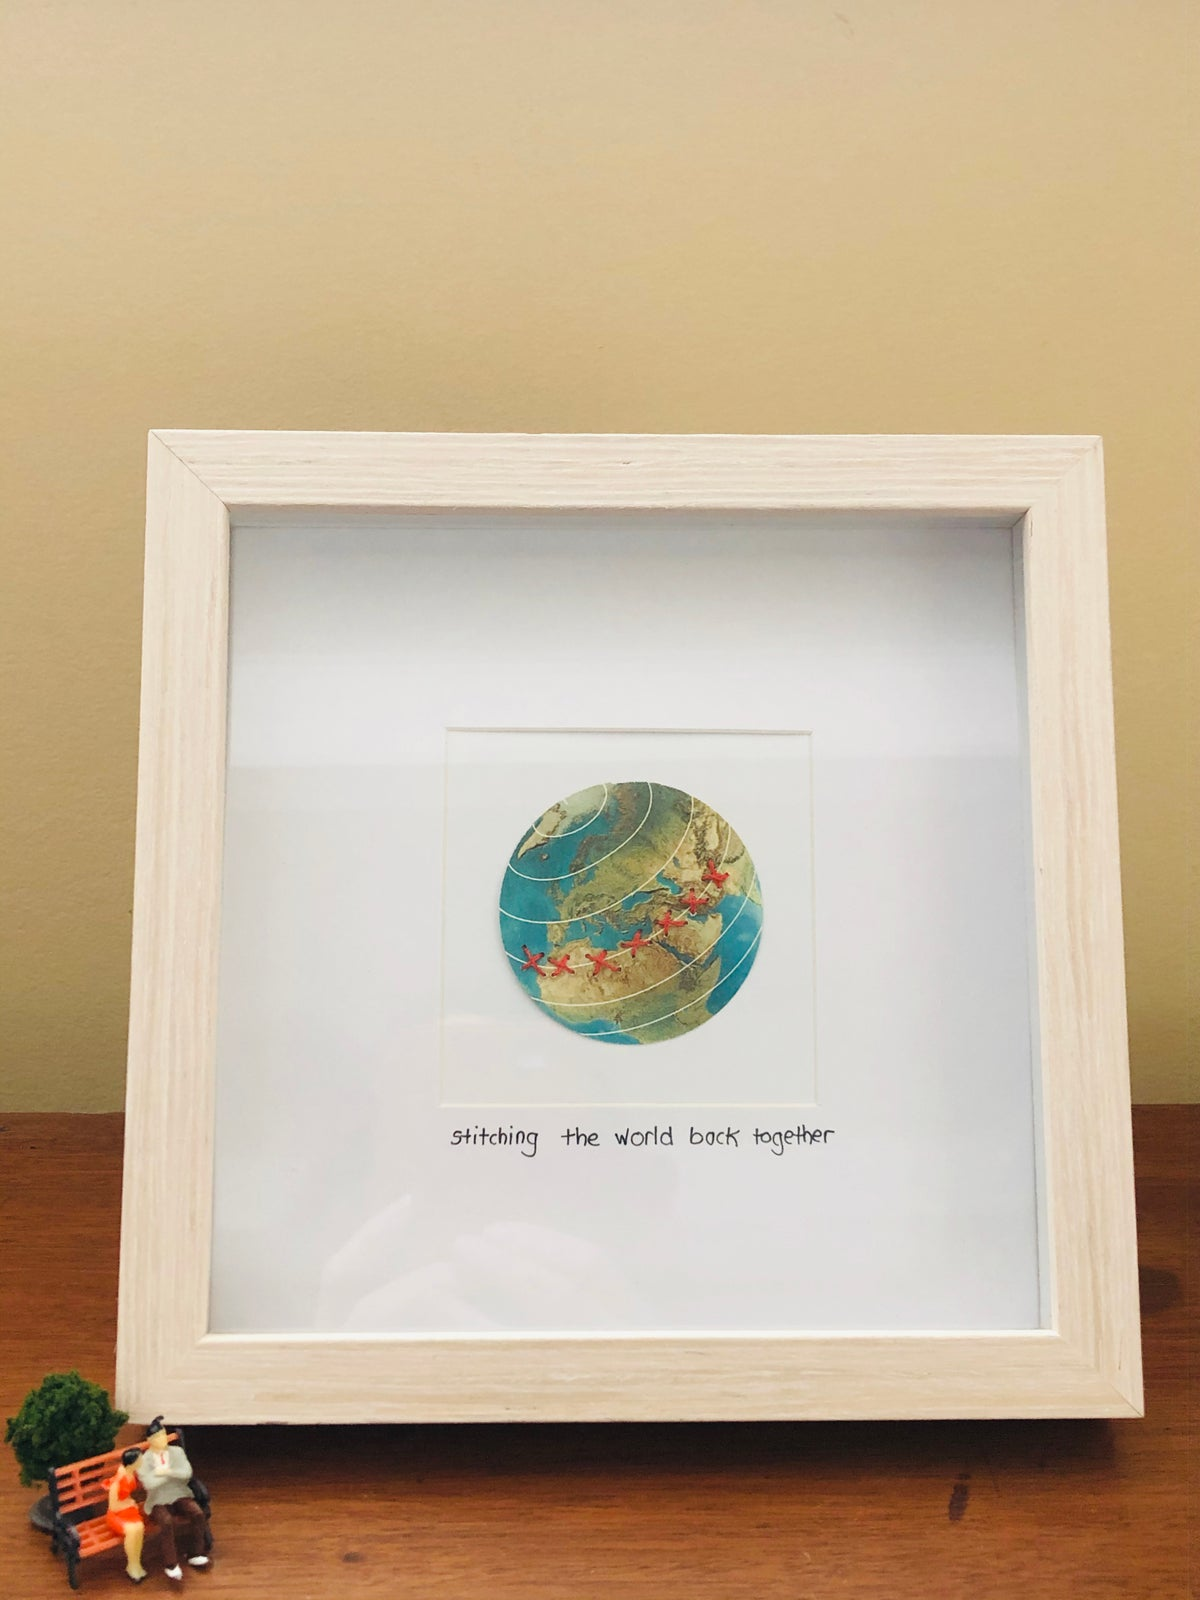 Stitching the World Back Together